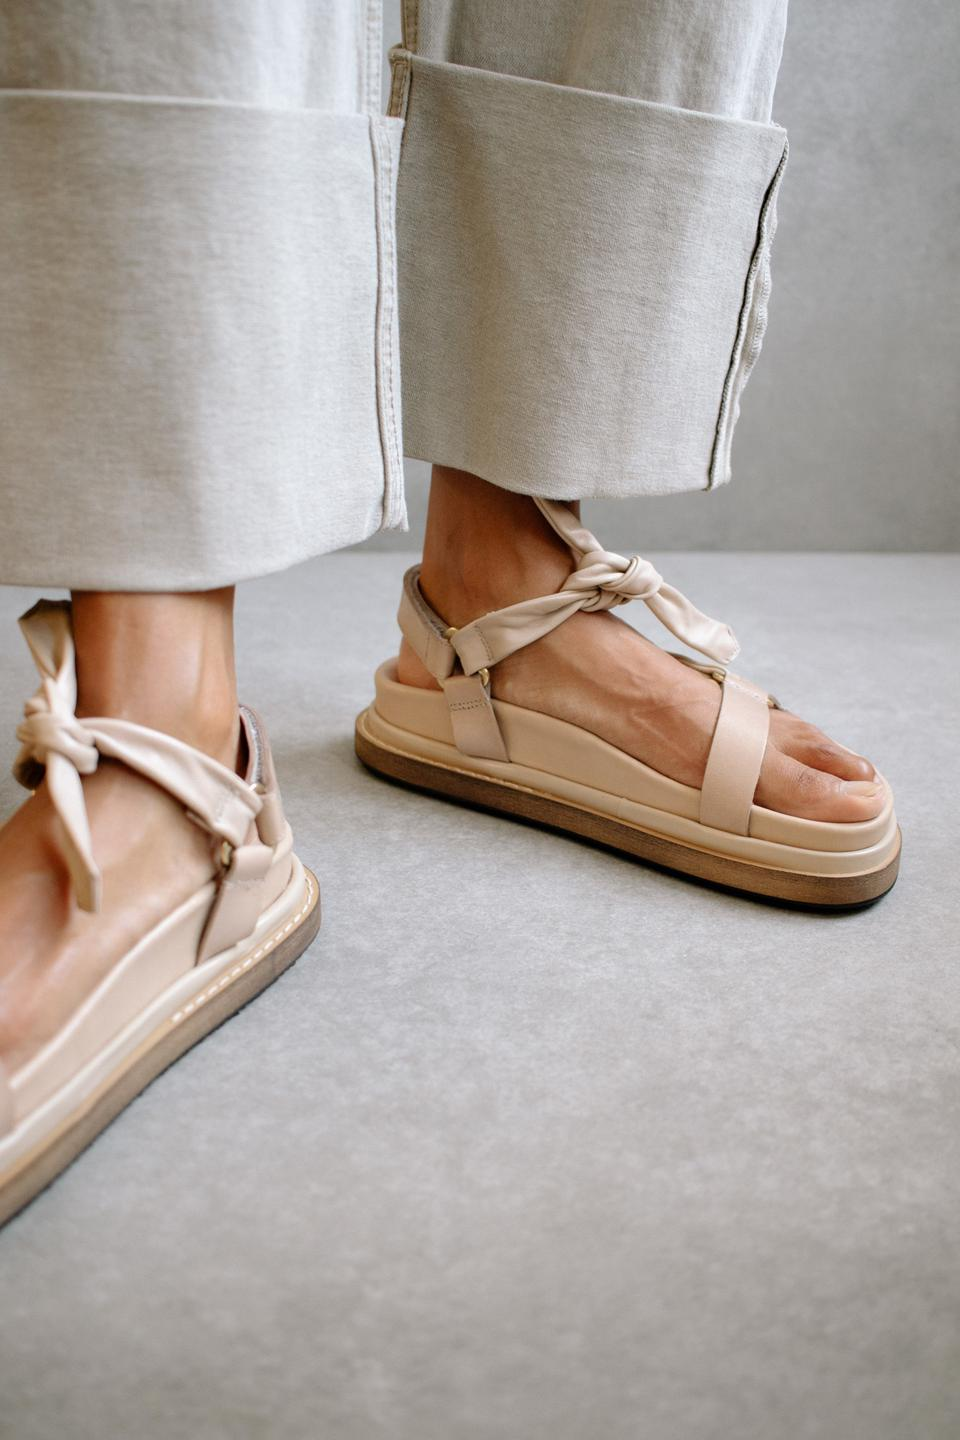 Tied Together sandal in stone and beige, by Alohas.